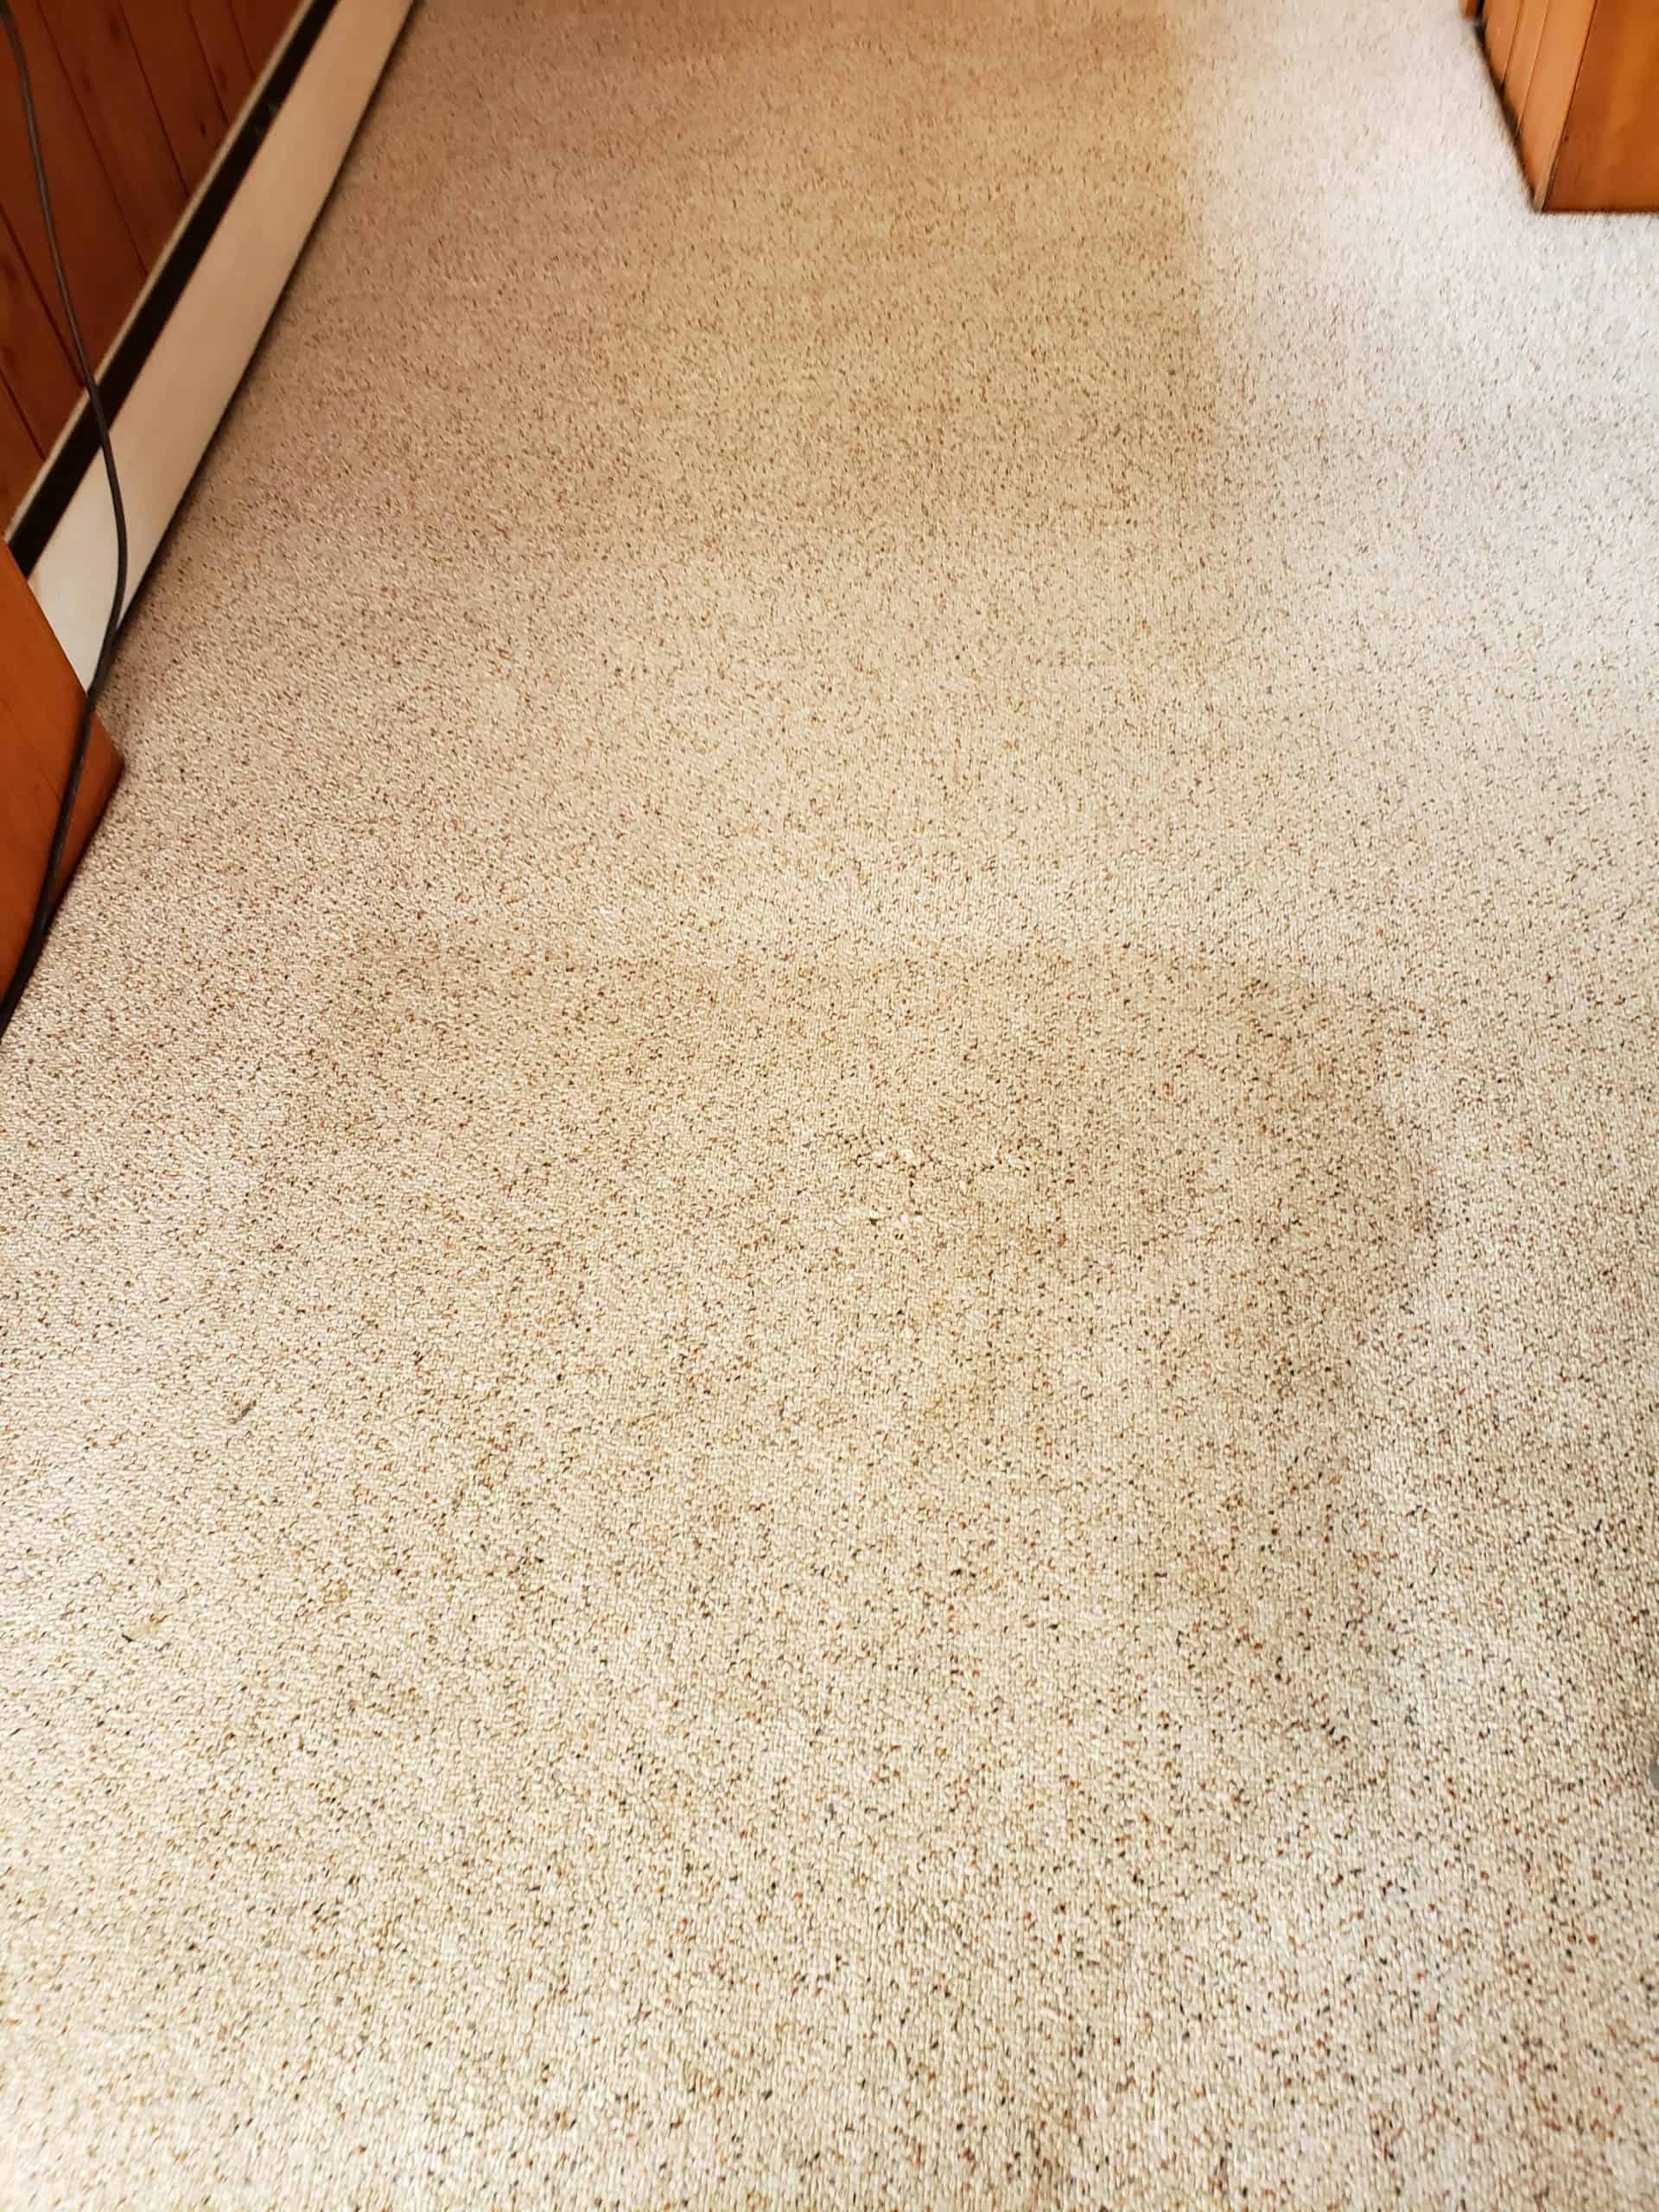 Bucks County, PA berber carpet cleaning